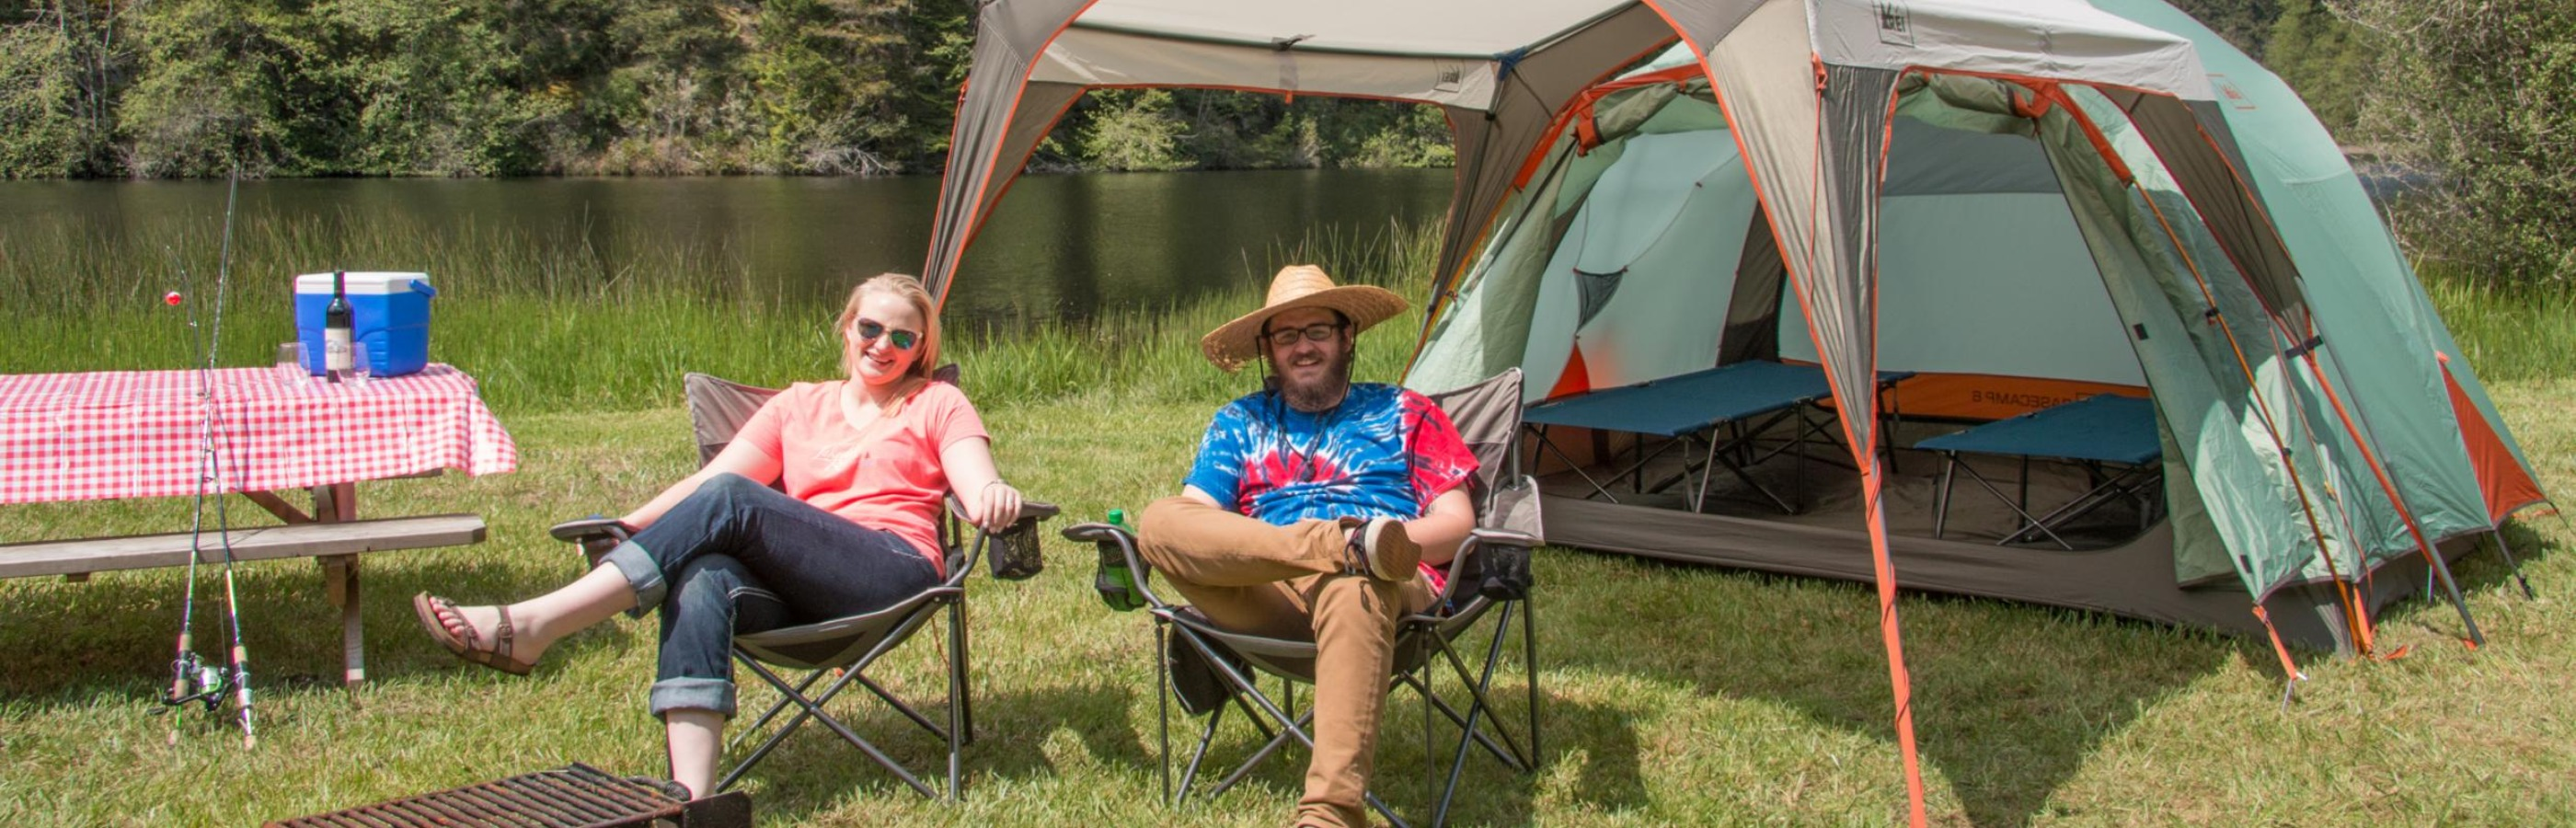 Camping E-Z at Lakedale Resort